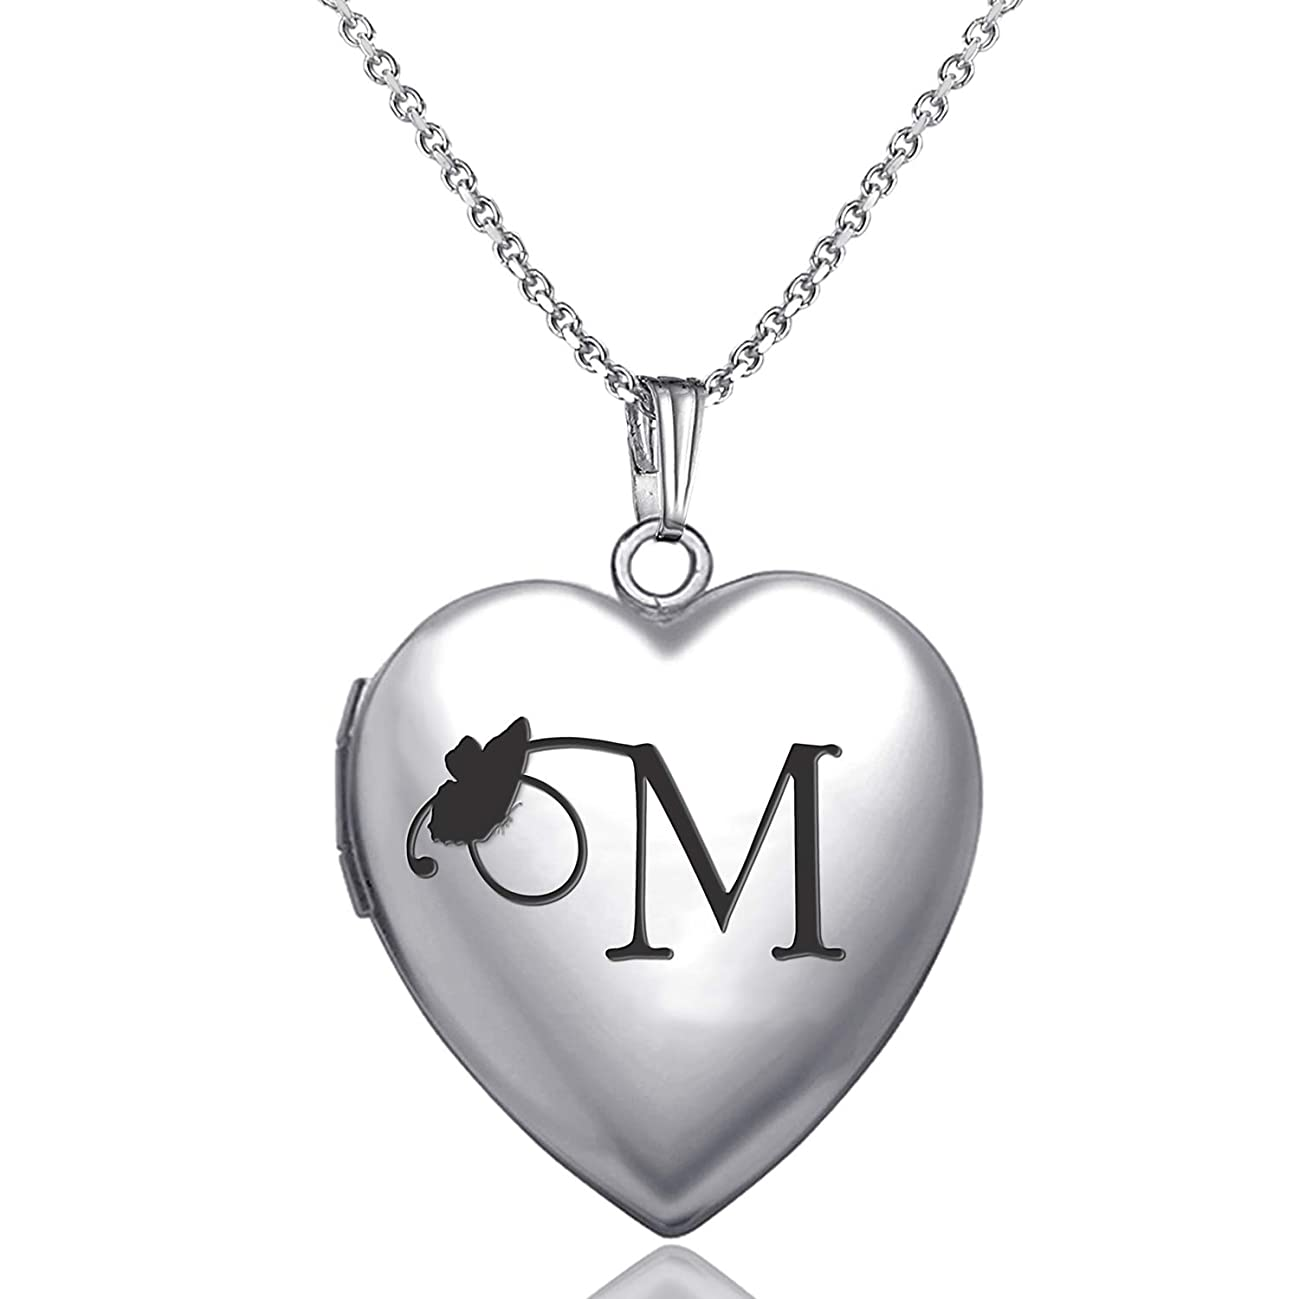 MUERDOU Locket Necklace That Holds Pictures Initial Alphabet Letter Heart Shaped Photo Memory Locket Pendant Necklace